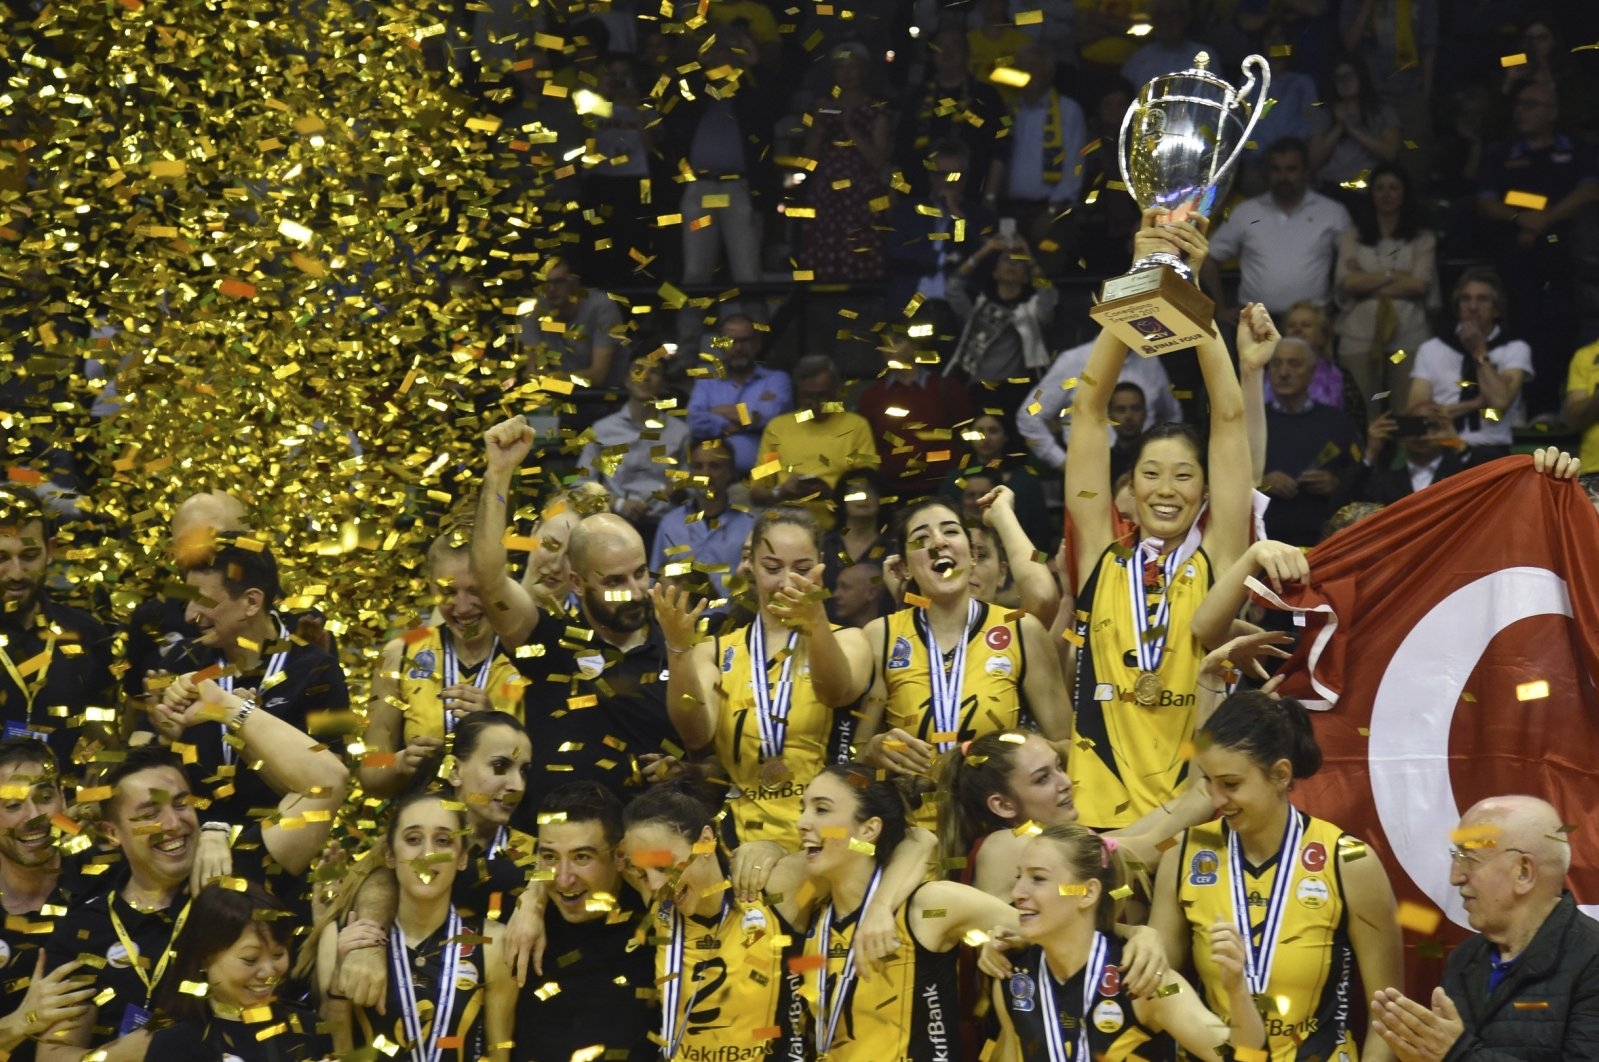 VakıfBank players celebrate after winning CEV Volleyball Champions League 2017 Final Match  against Italy's Imoco Volley, Treviso, April 25, 2017. (AA Photo)